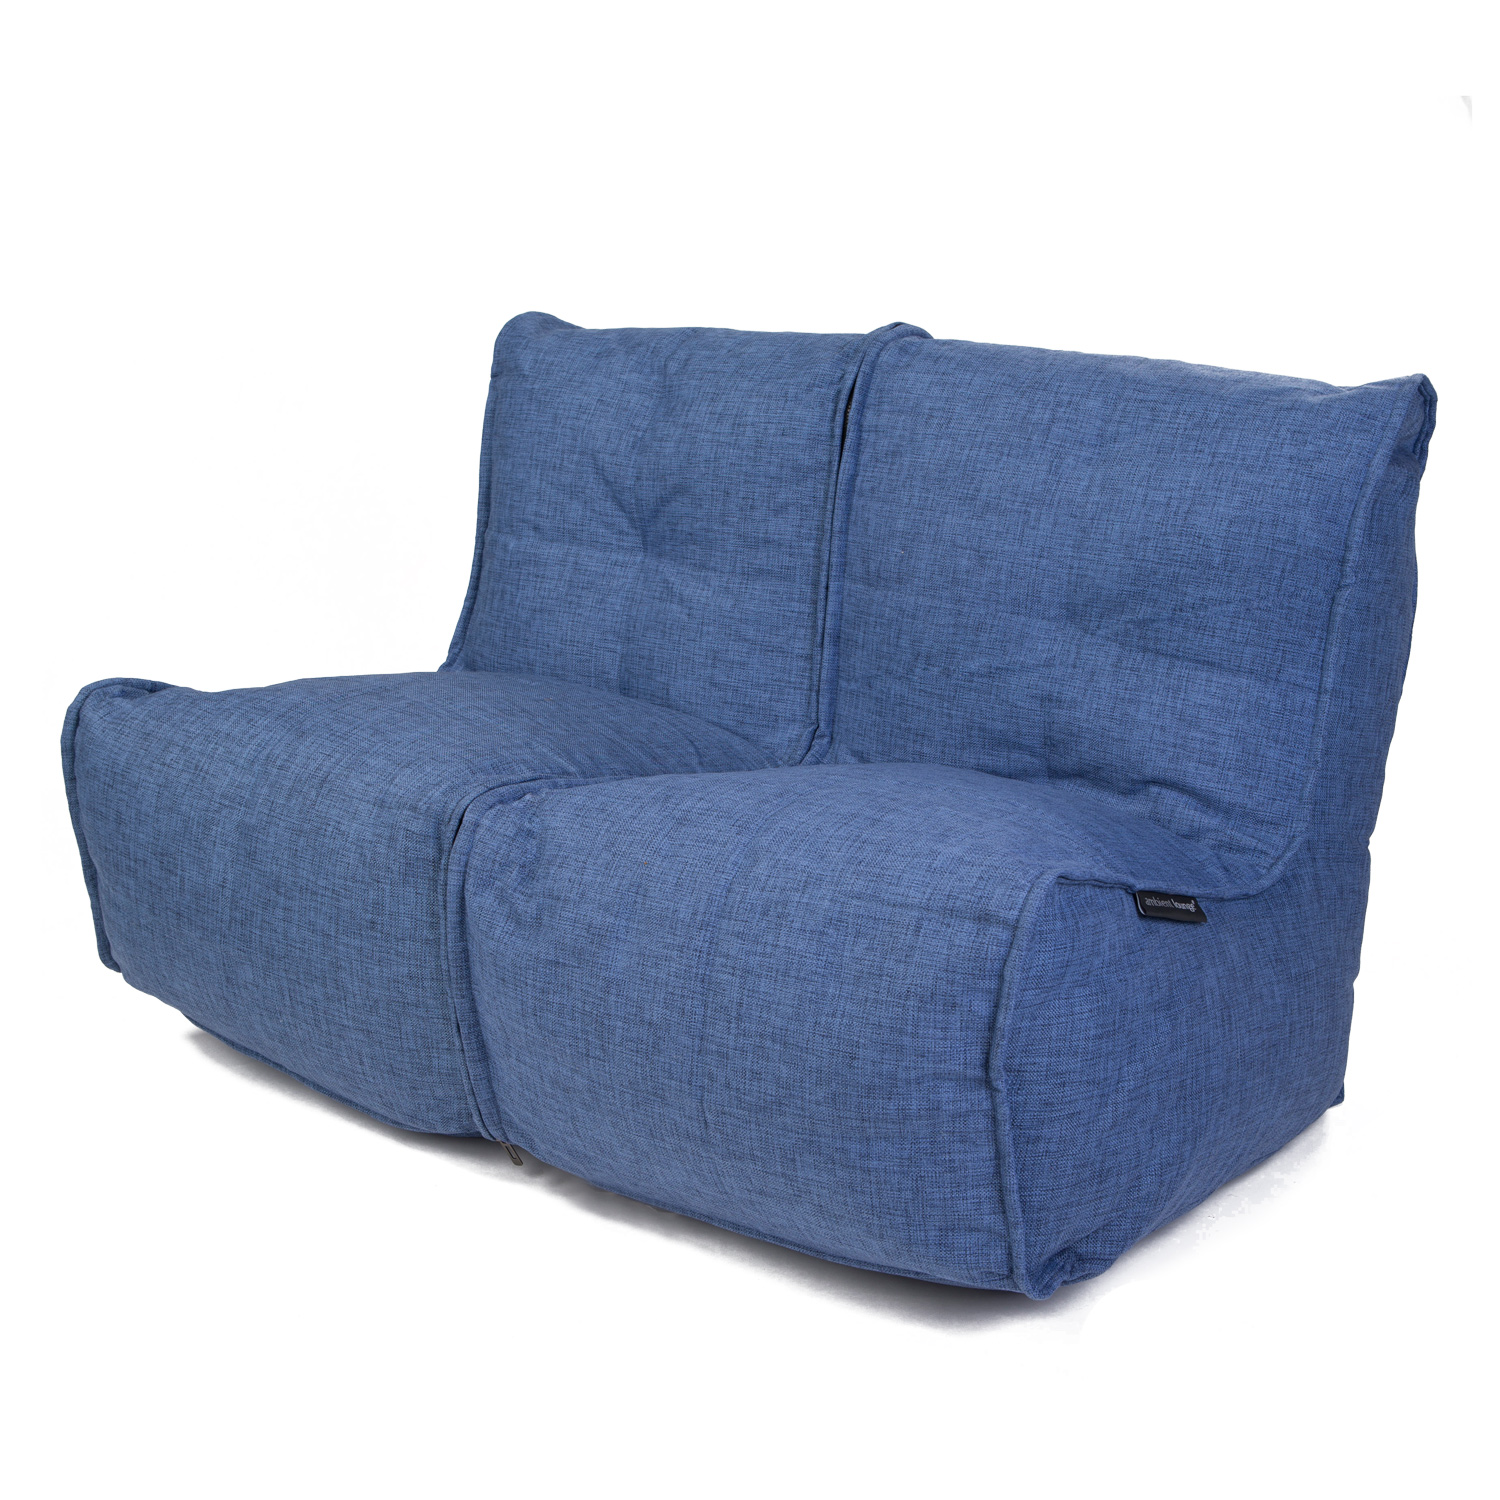 2 Seater blue Sofa Designer Bean Bag Couch Blue Fabric